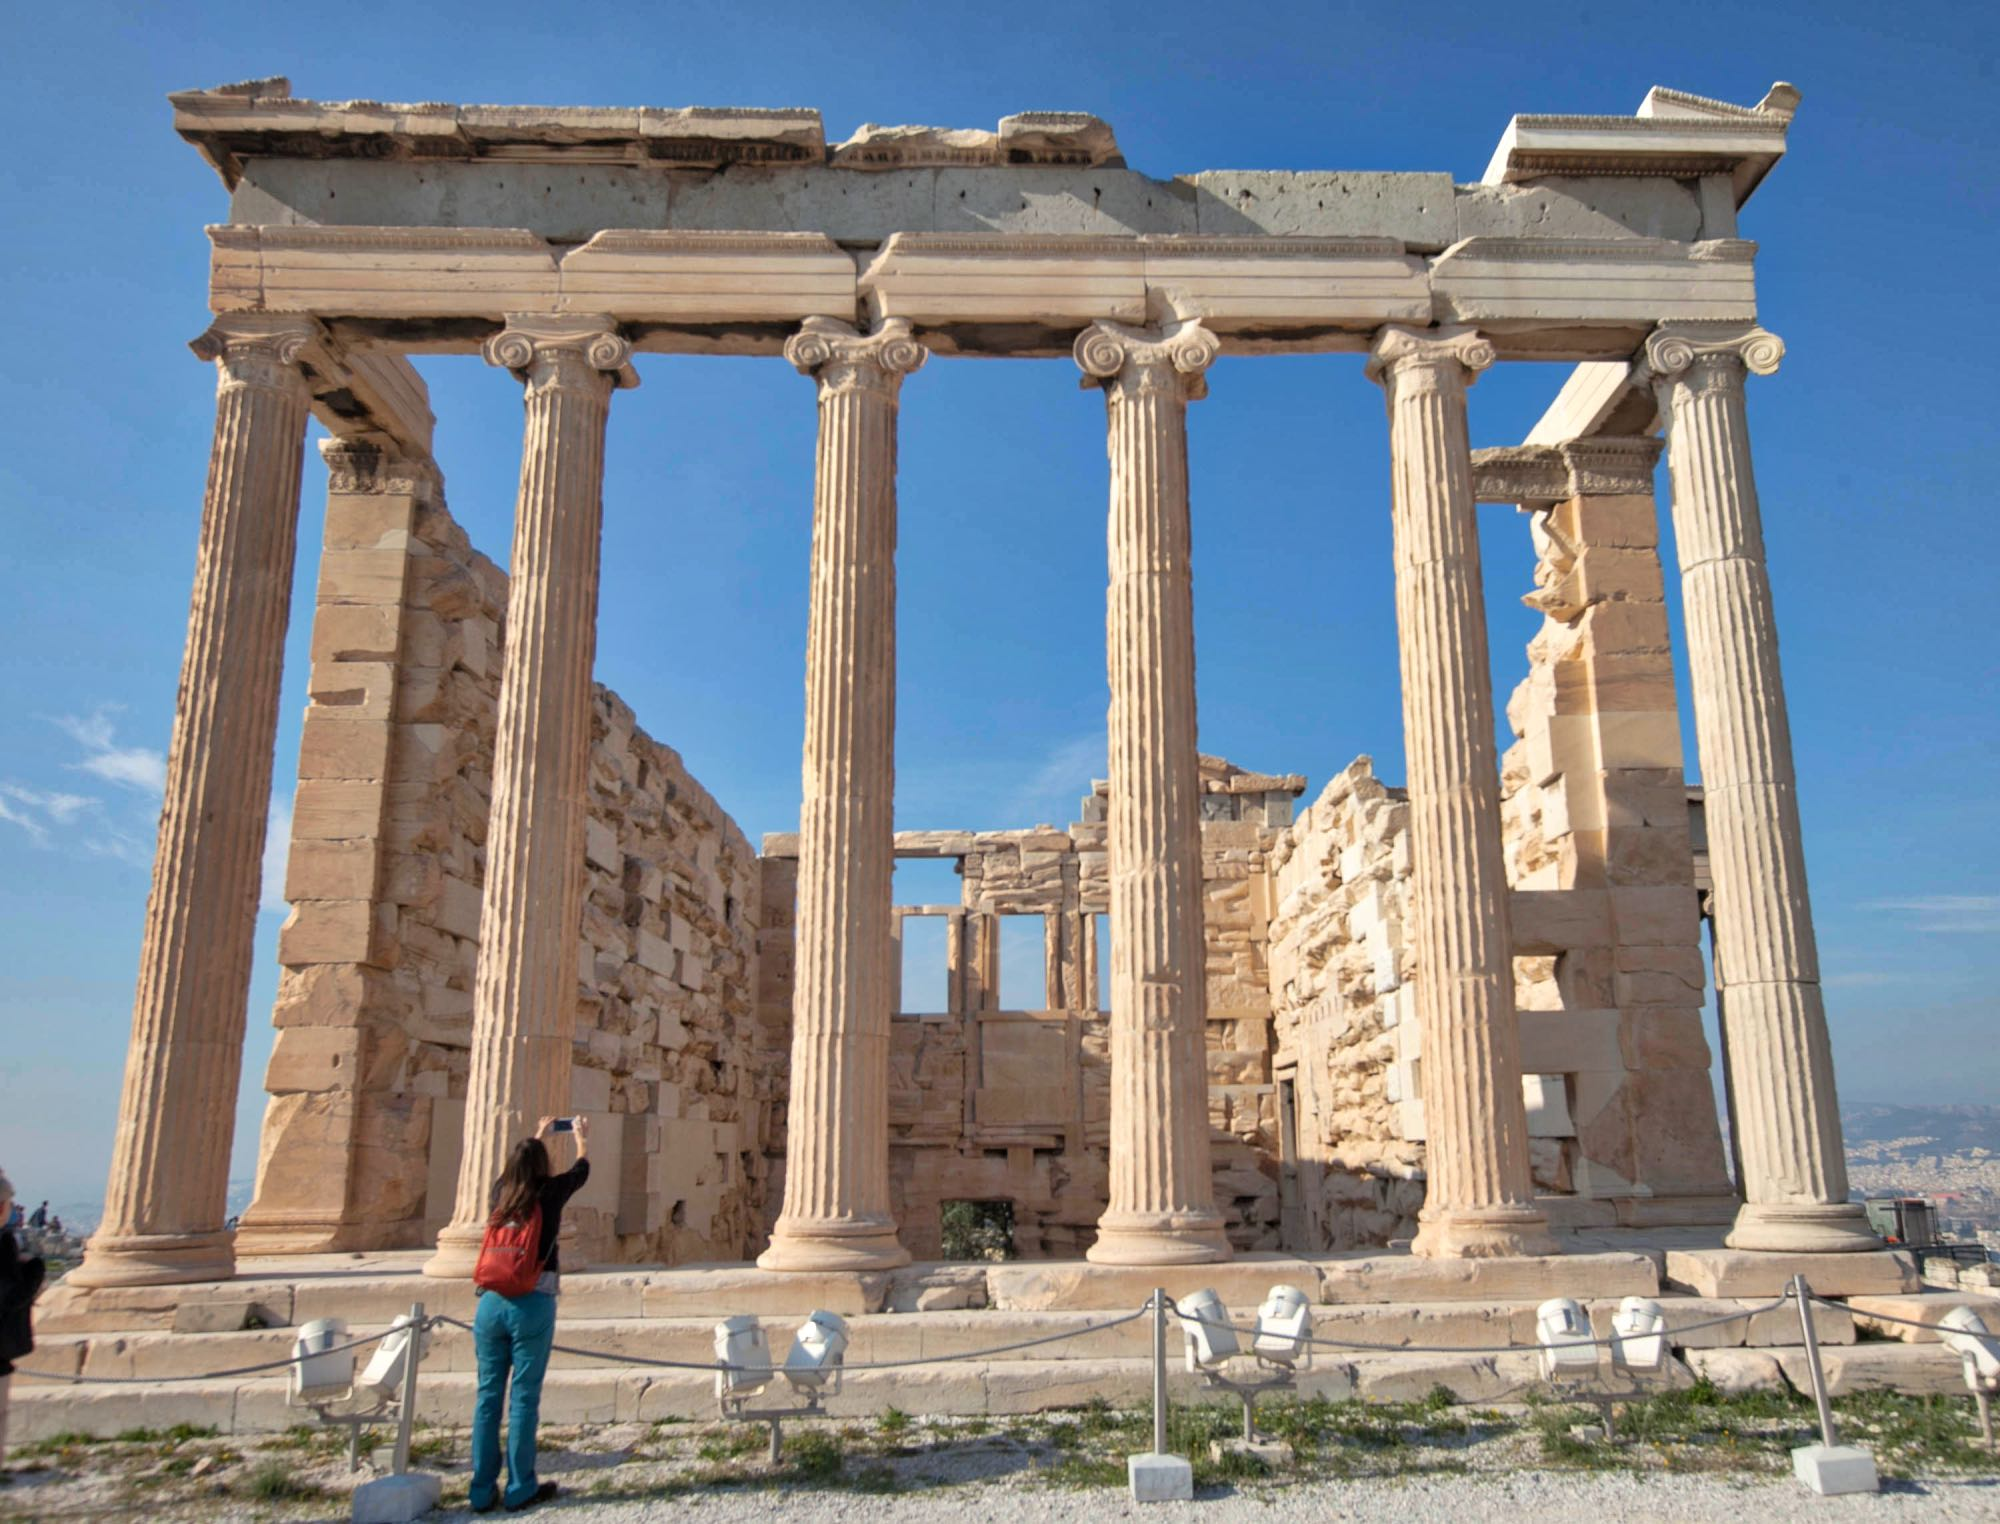 The Erechtheion or Erechtheum. an ancient Greek temple on the north side of the Acropolis of Athens dedicated to Athena and Poseidon